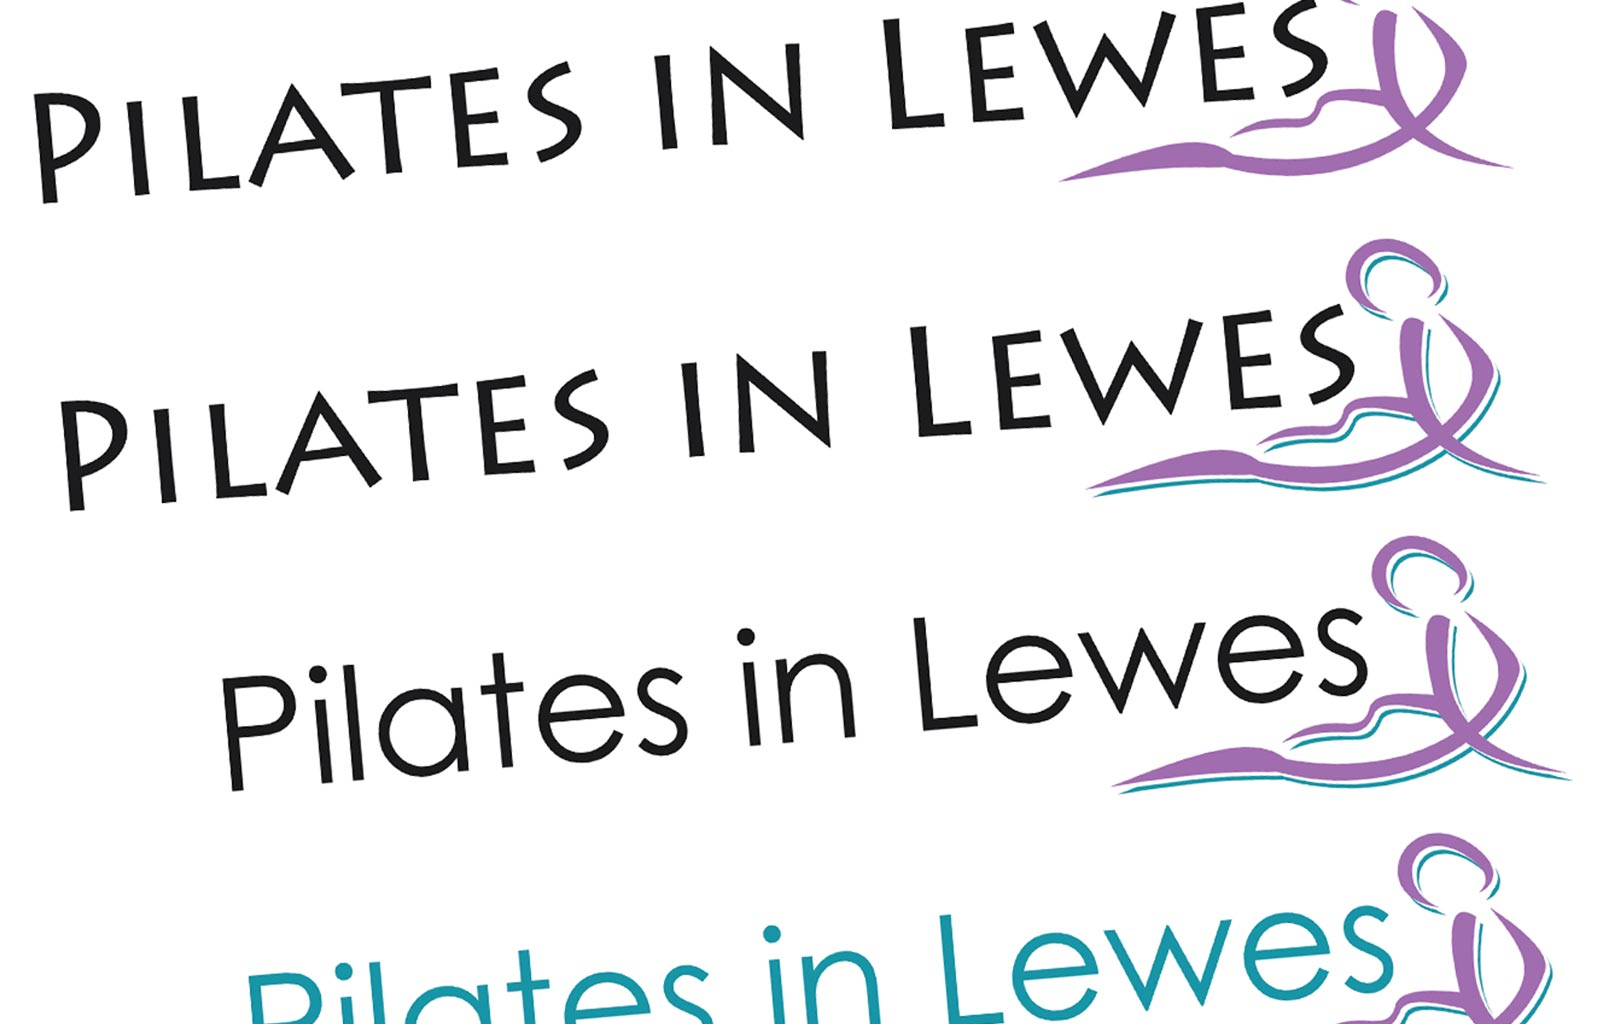 Pilates in Lewes Logos